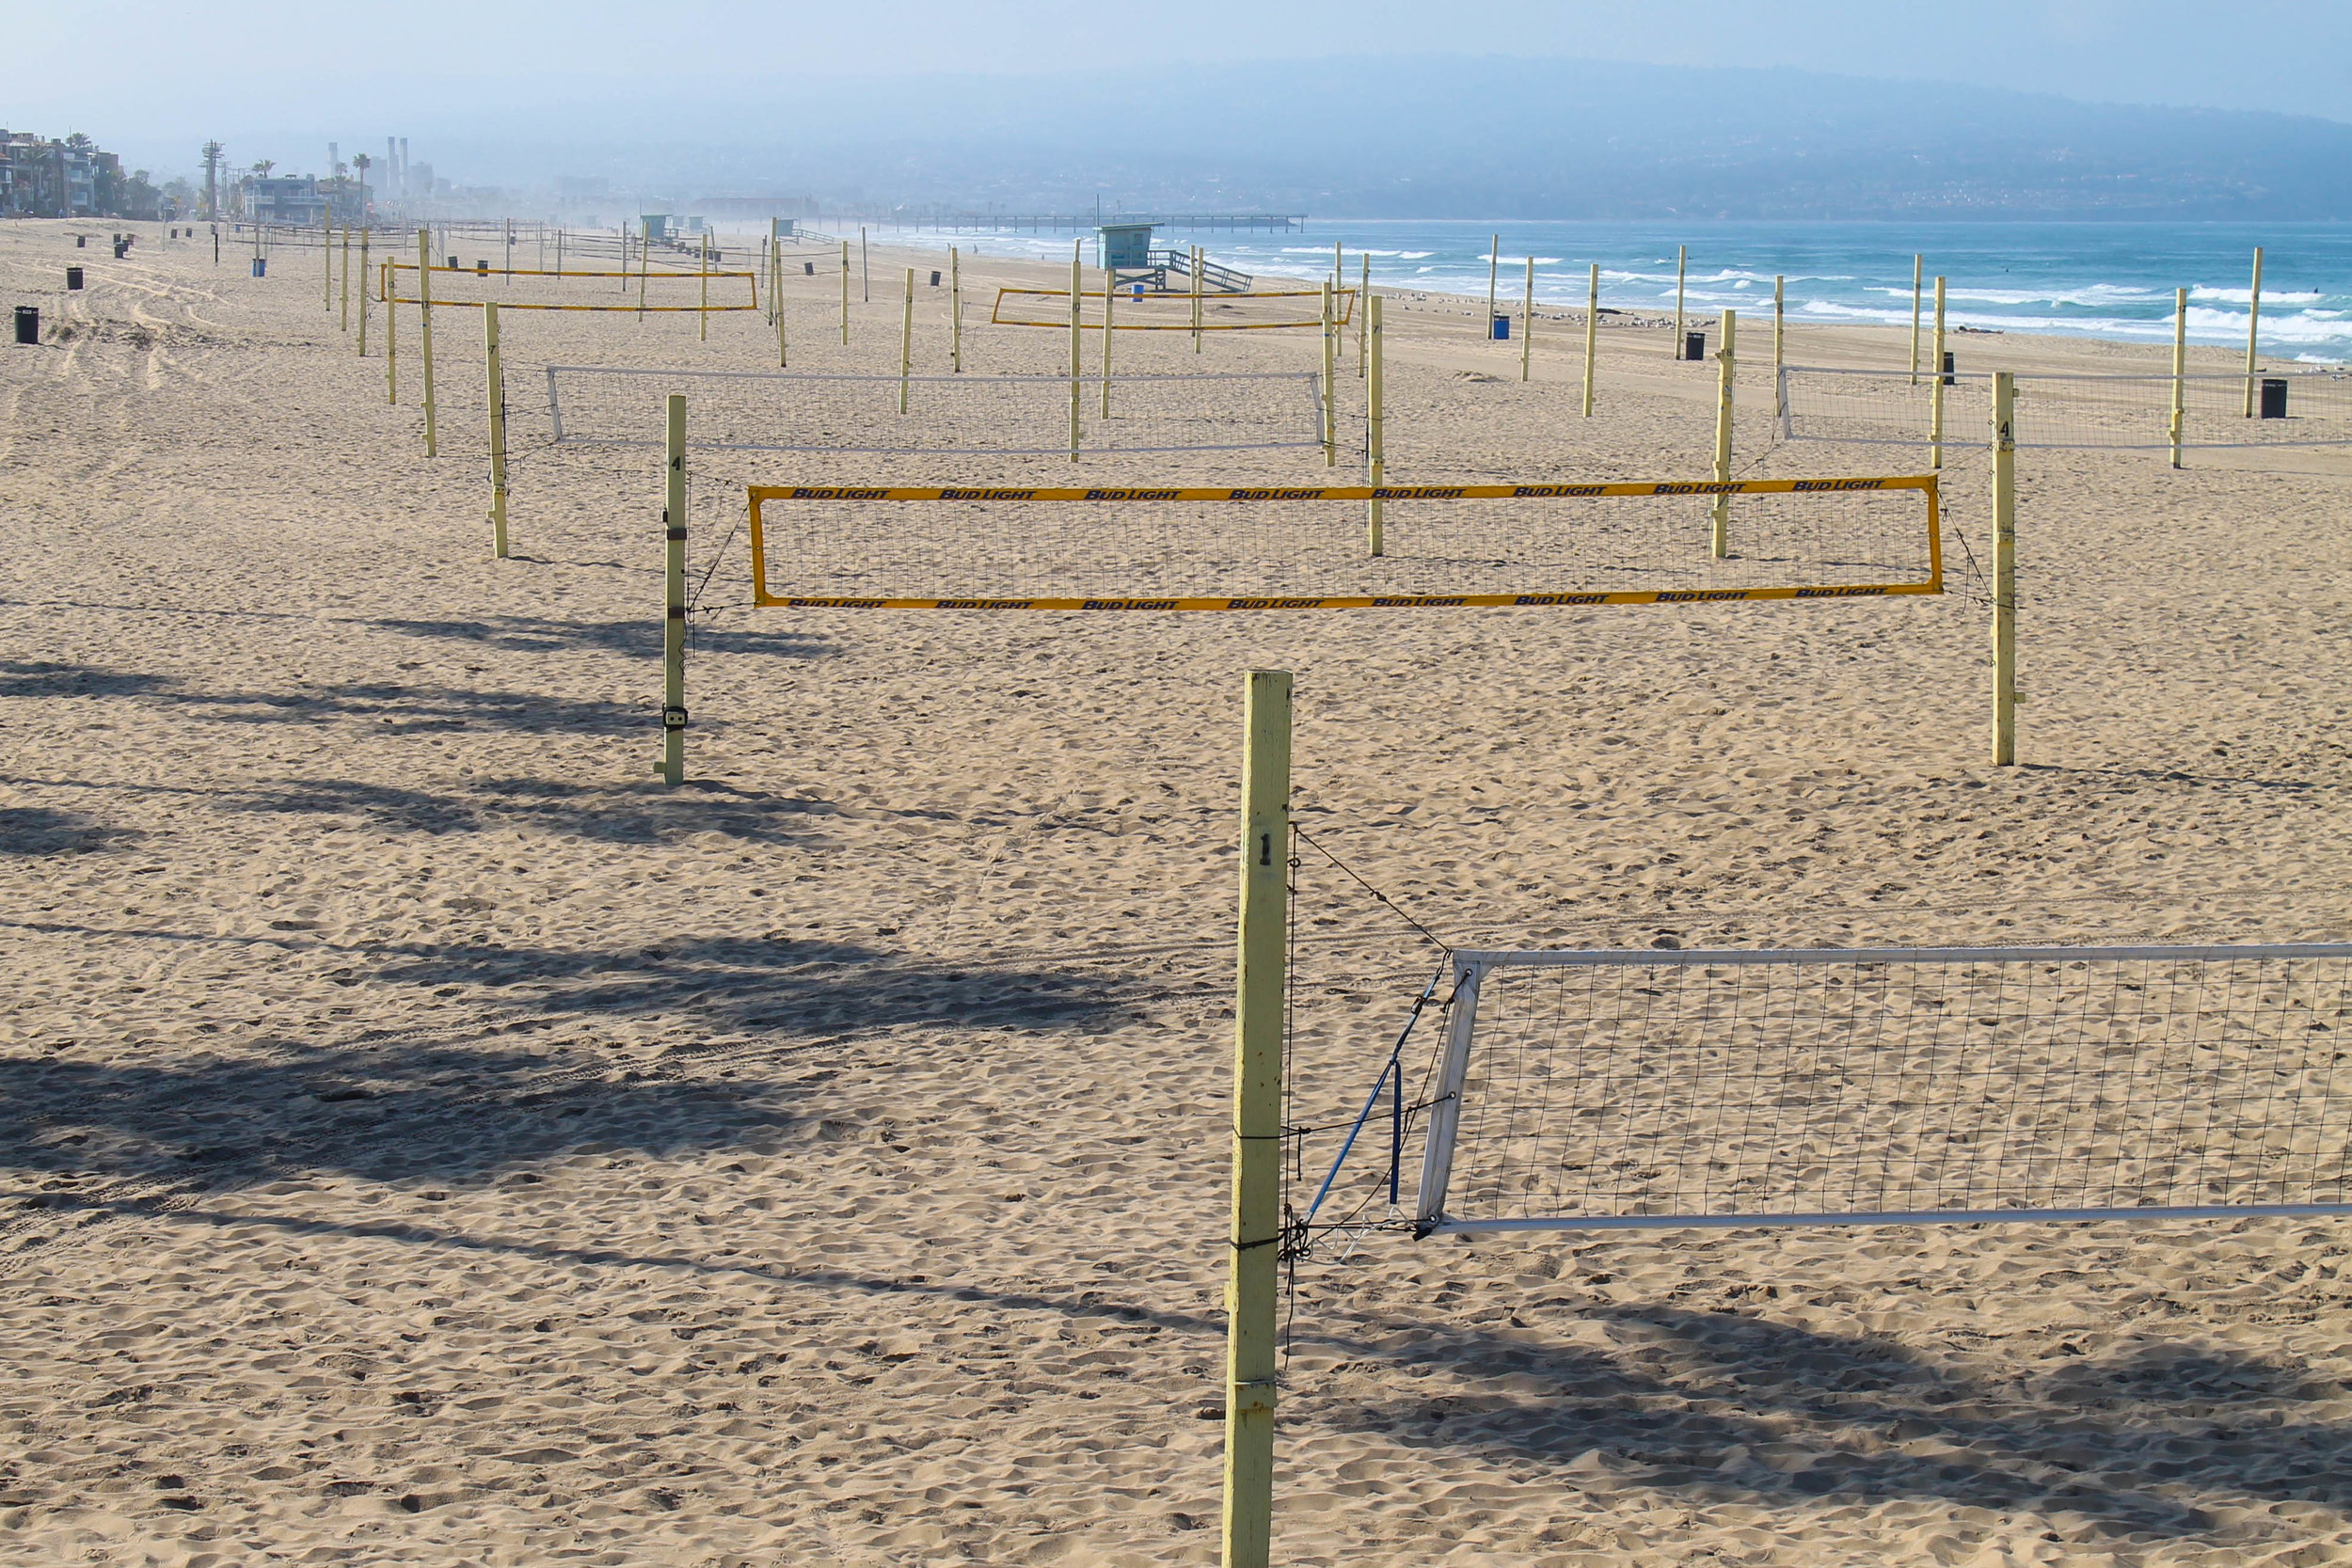 LA volleyball courts